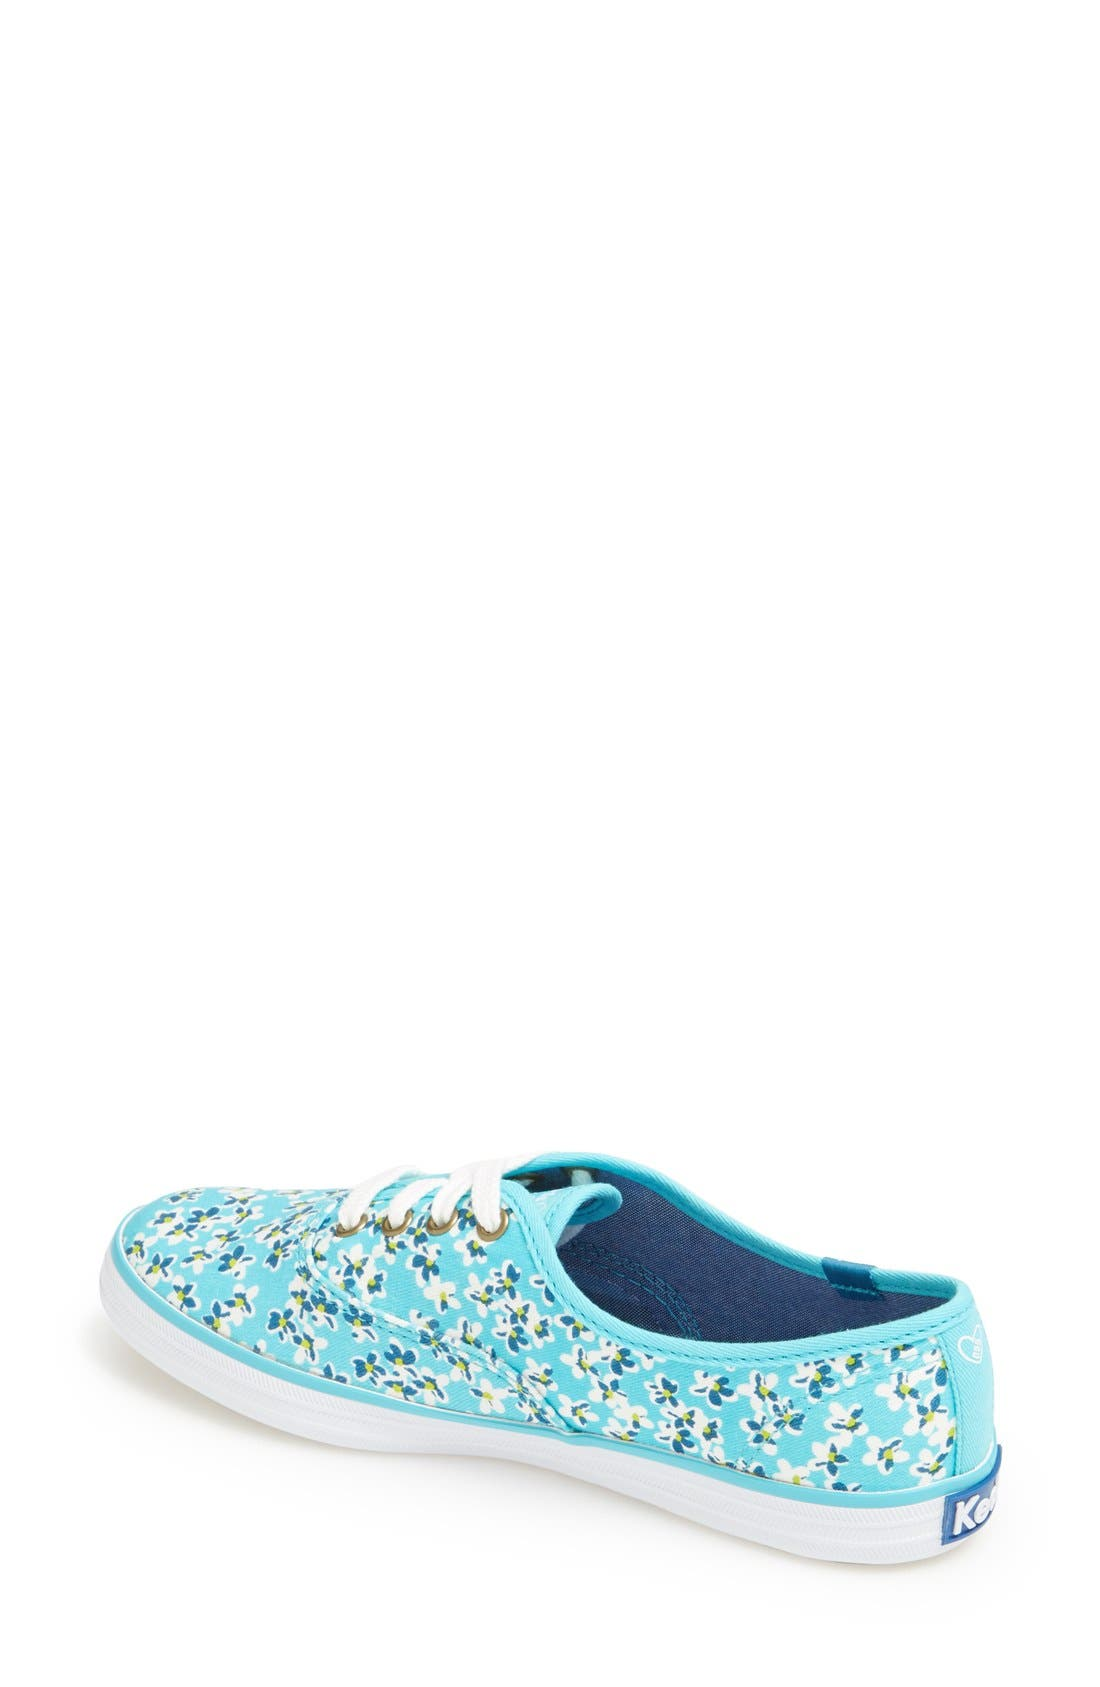 Alternate Image 2  - Keds® Taylor Swift 'Champion Sunpie Floral' Sneaker (Women)